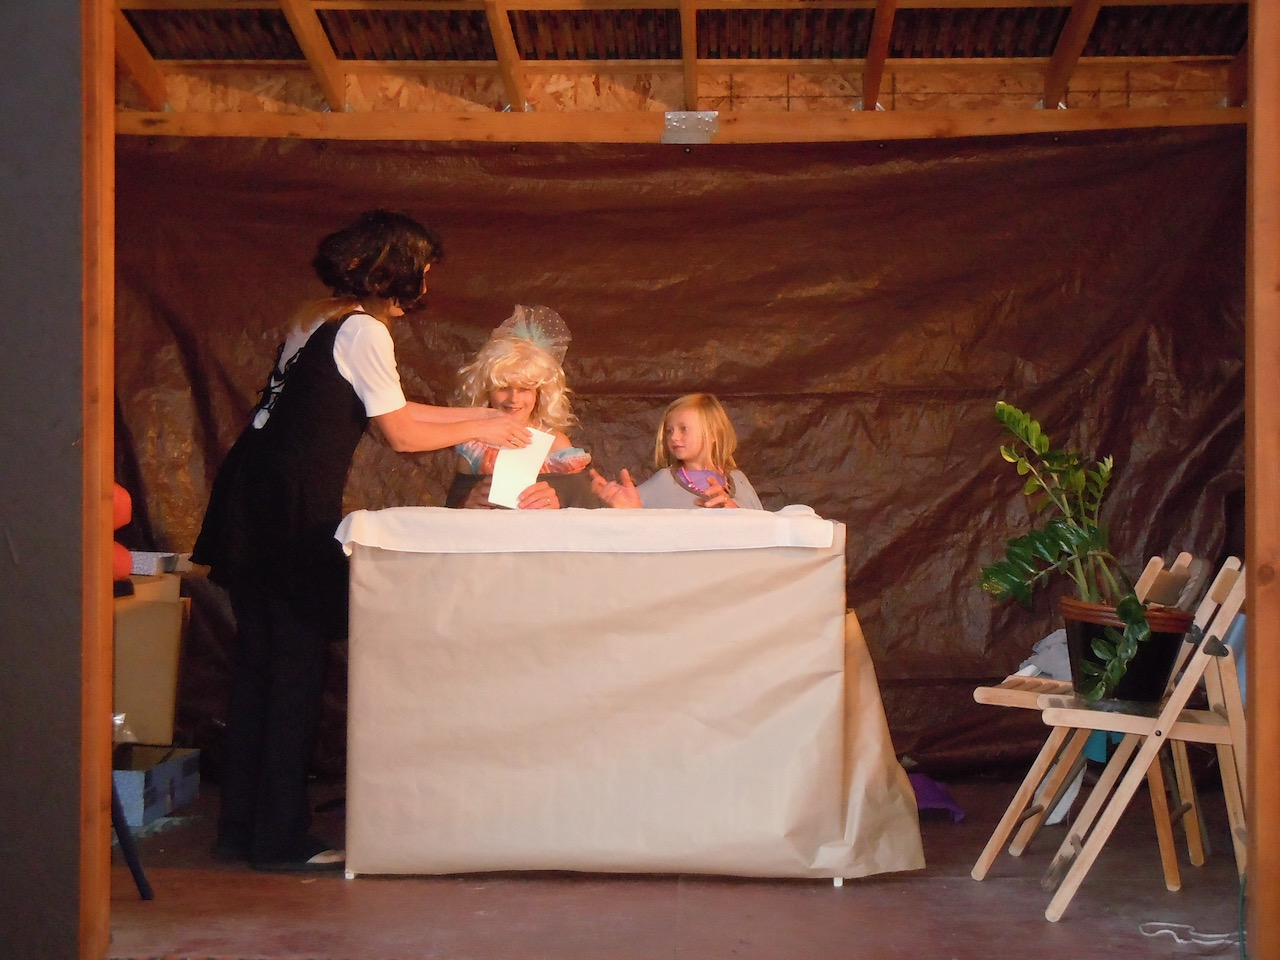 At family gathers: Dads and Daugters skit in Yvonne's shed